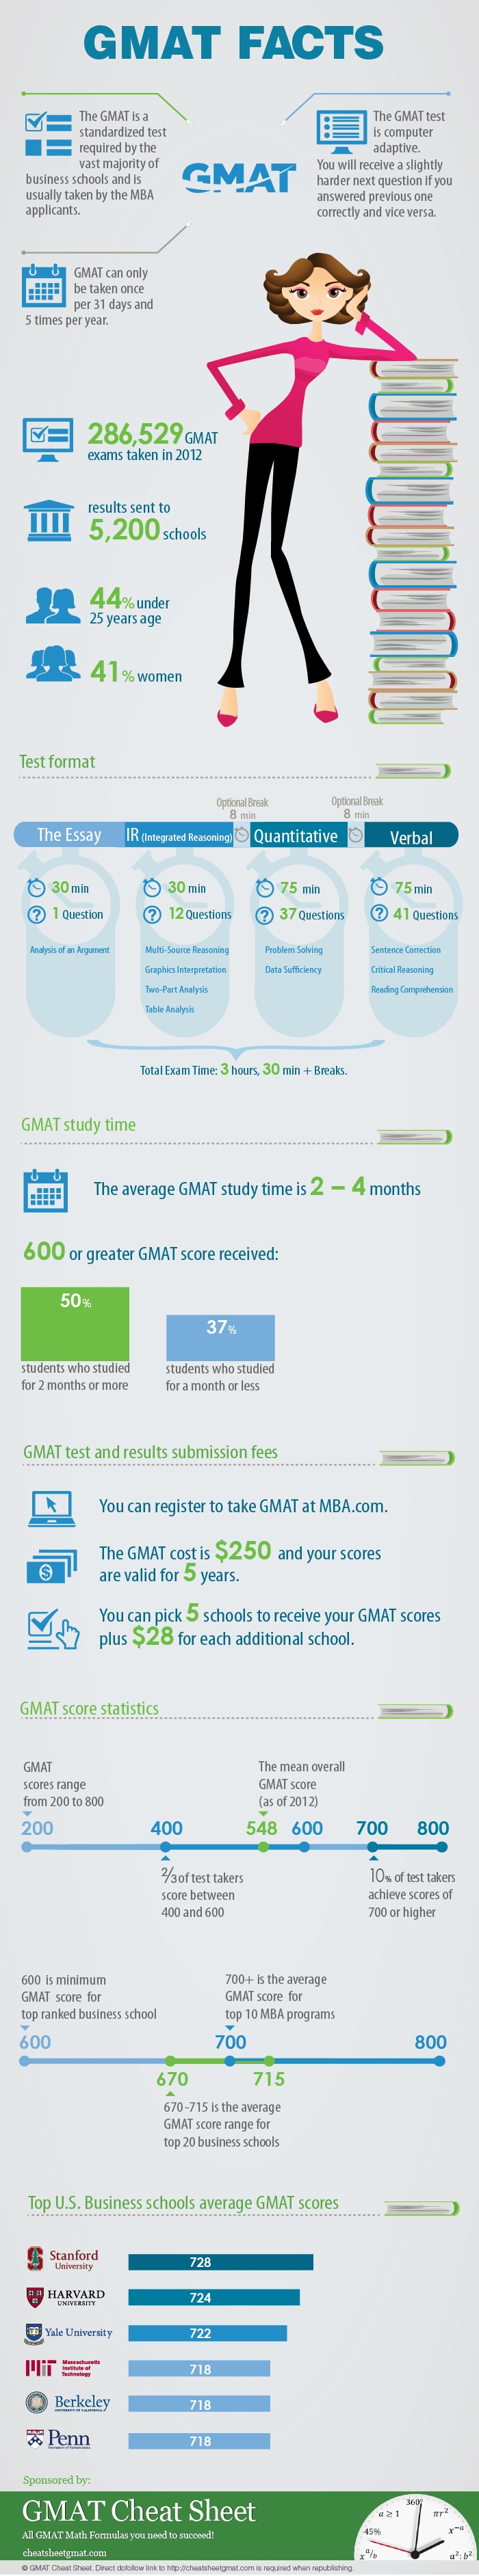 Инфографика от GMAT Cheat Sheet: